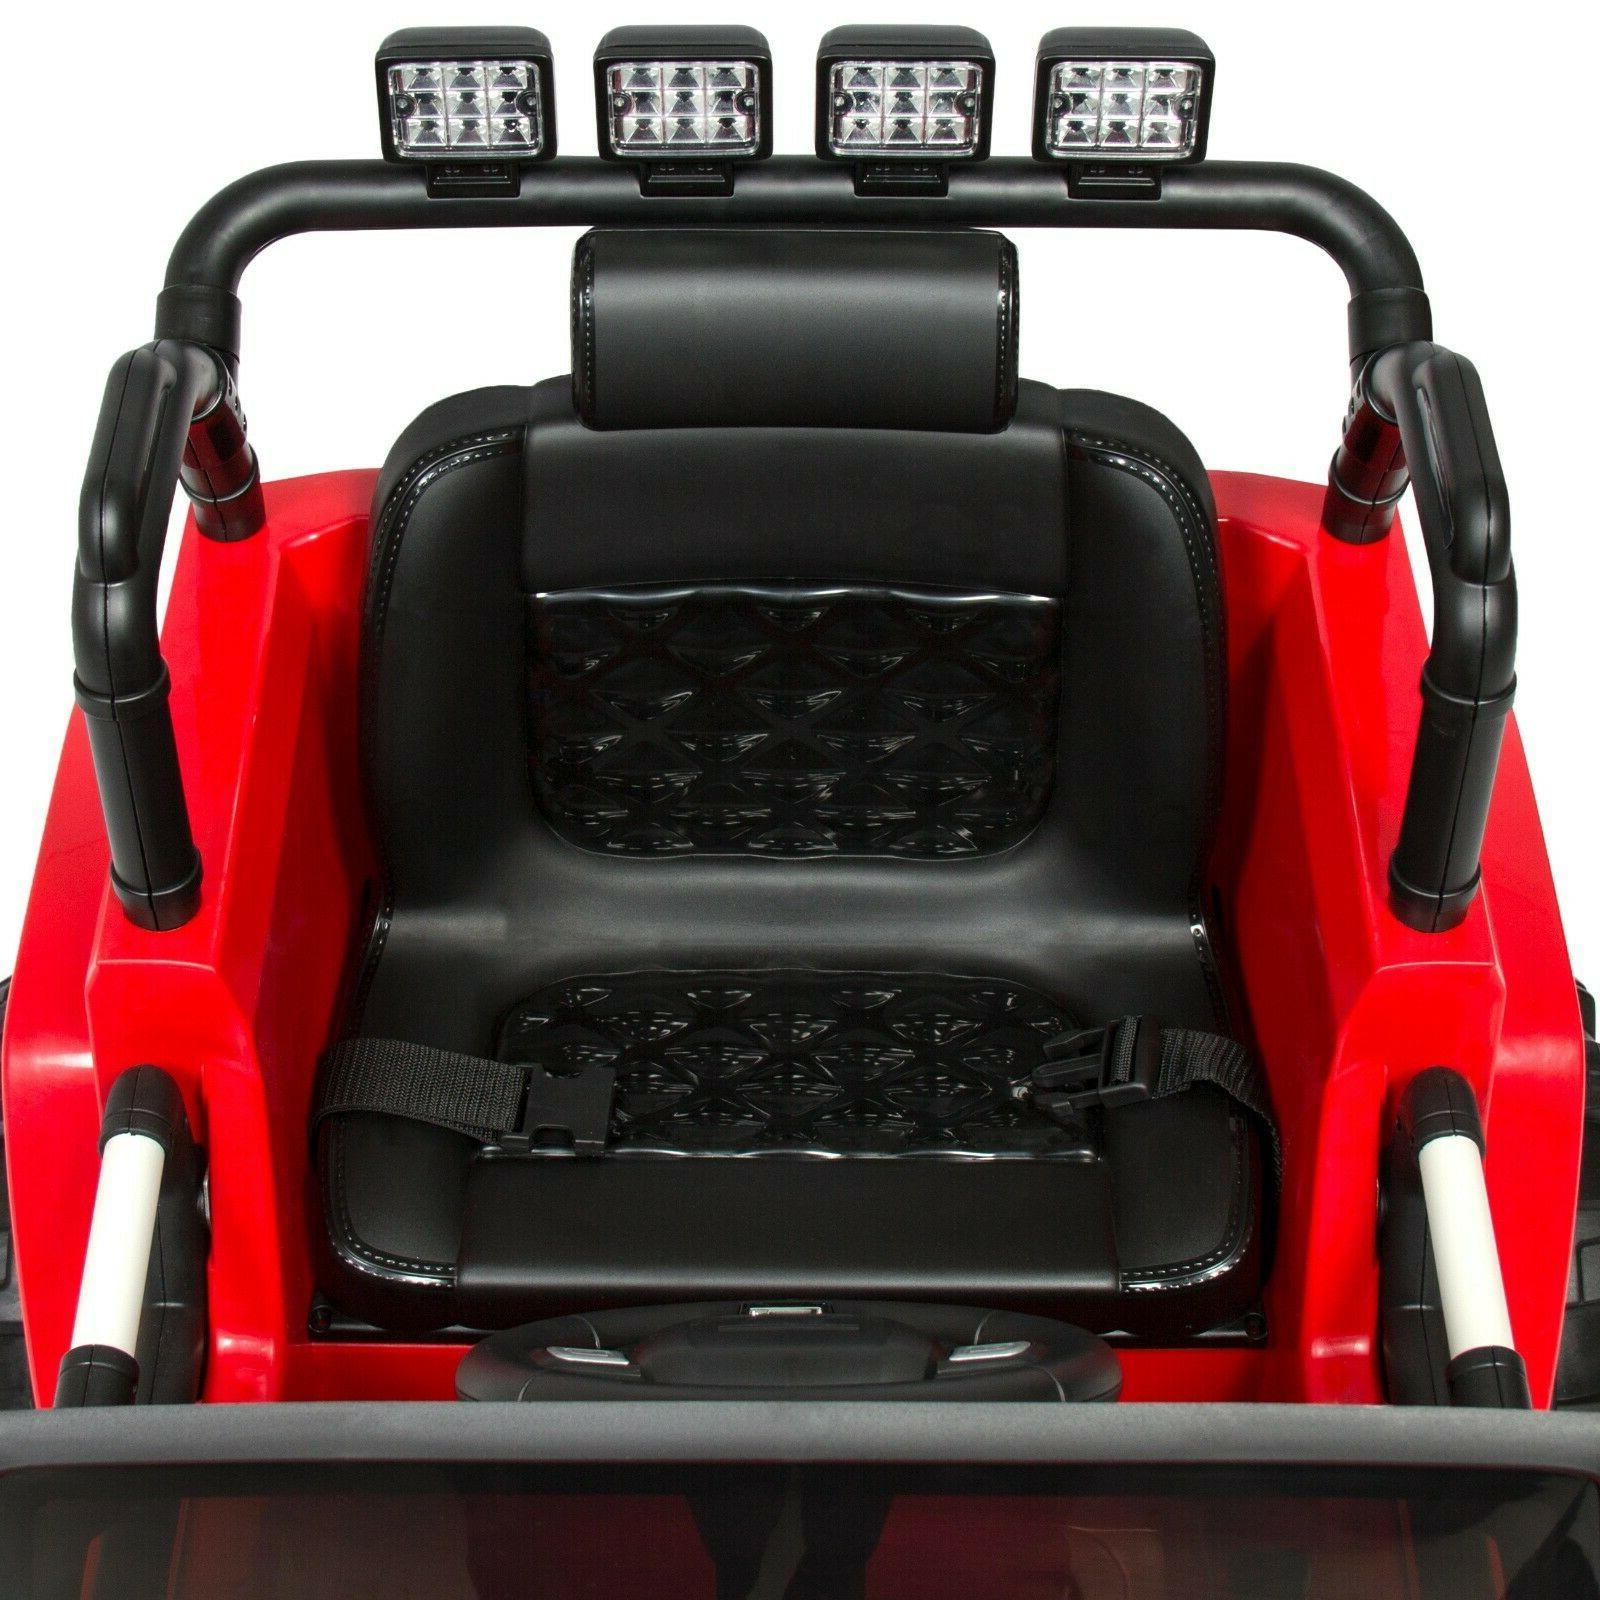 Power Jeep Kids Ride On Toys Outdoor 12V Ride-On